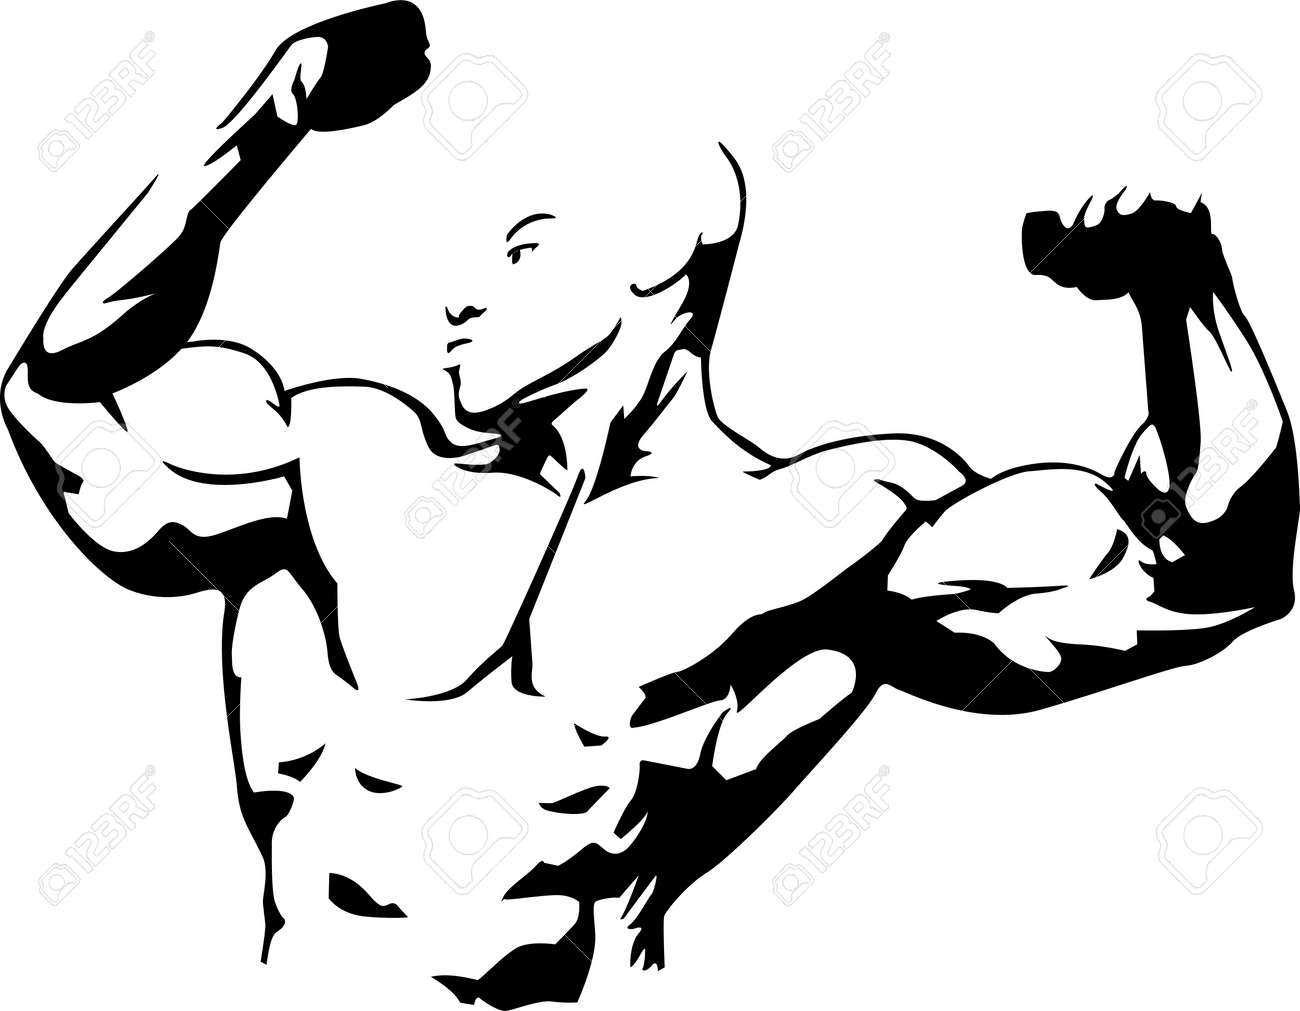 Vector Illustration of Muscle